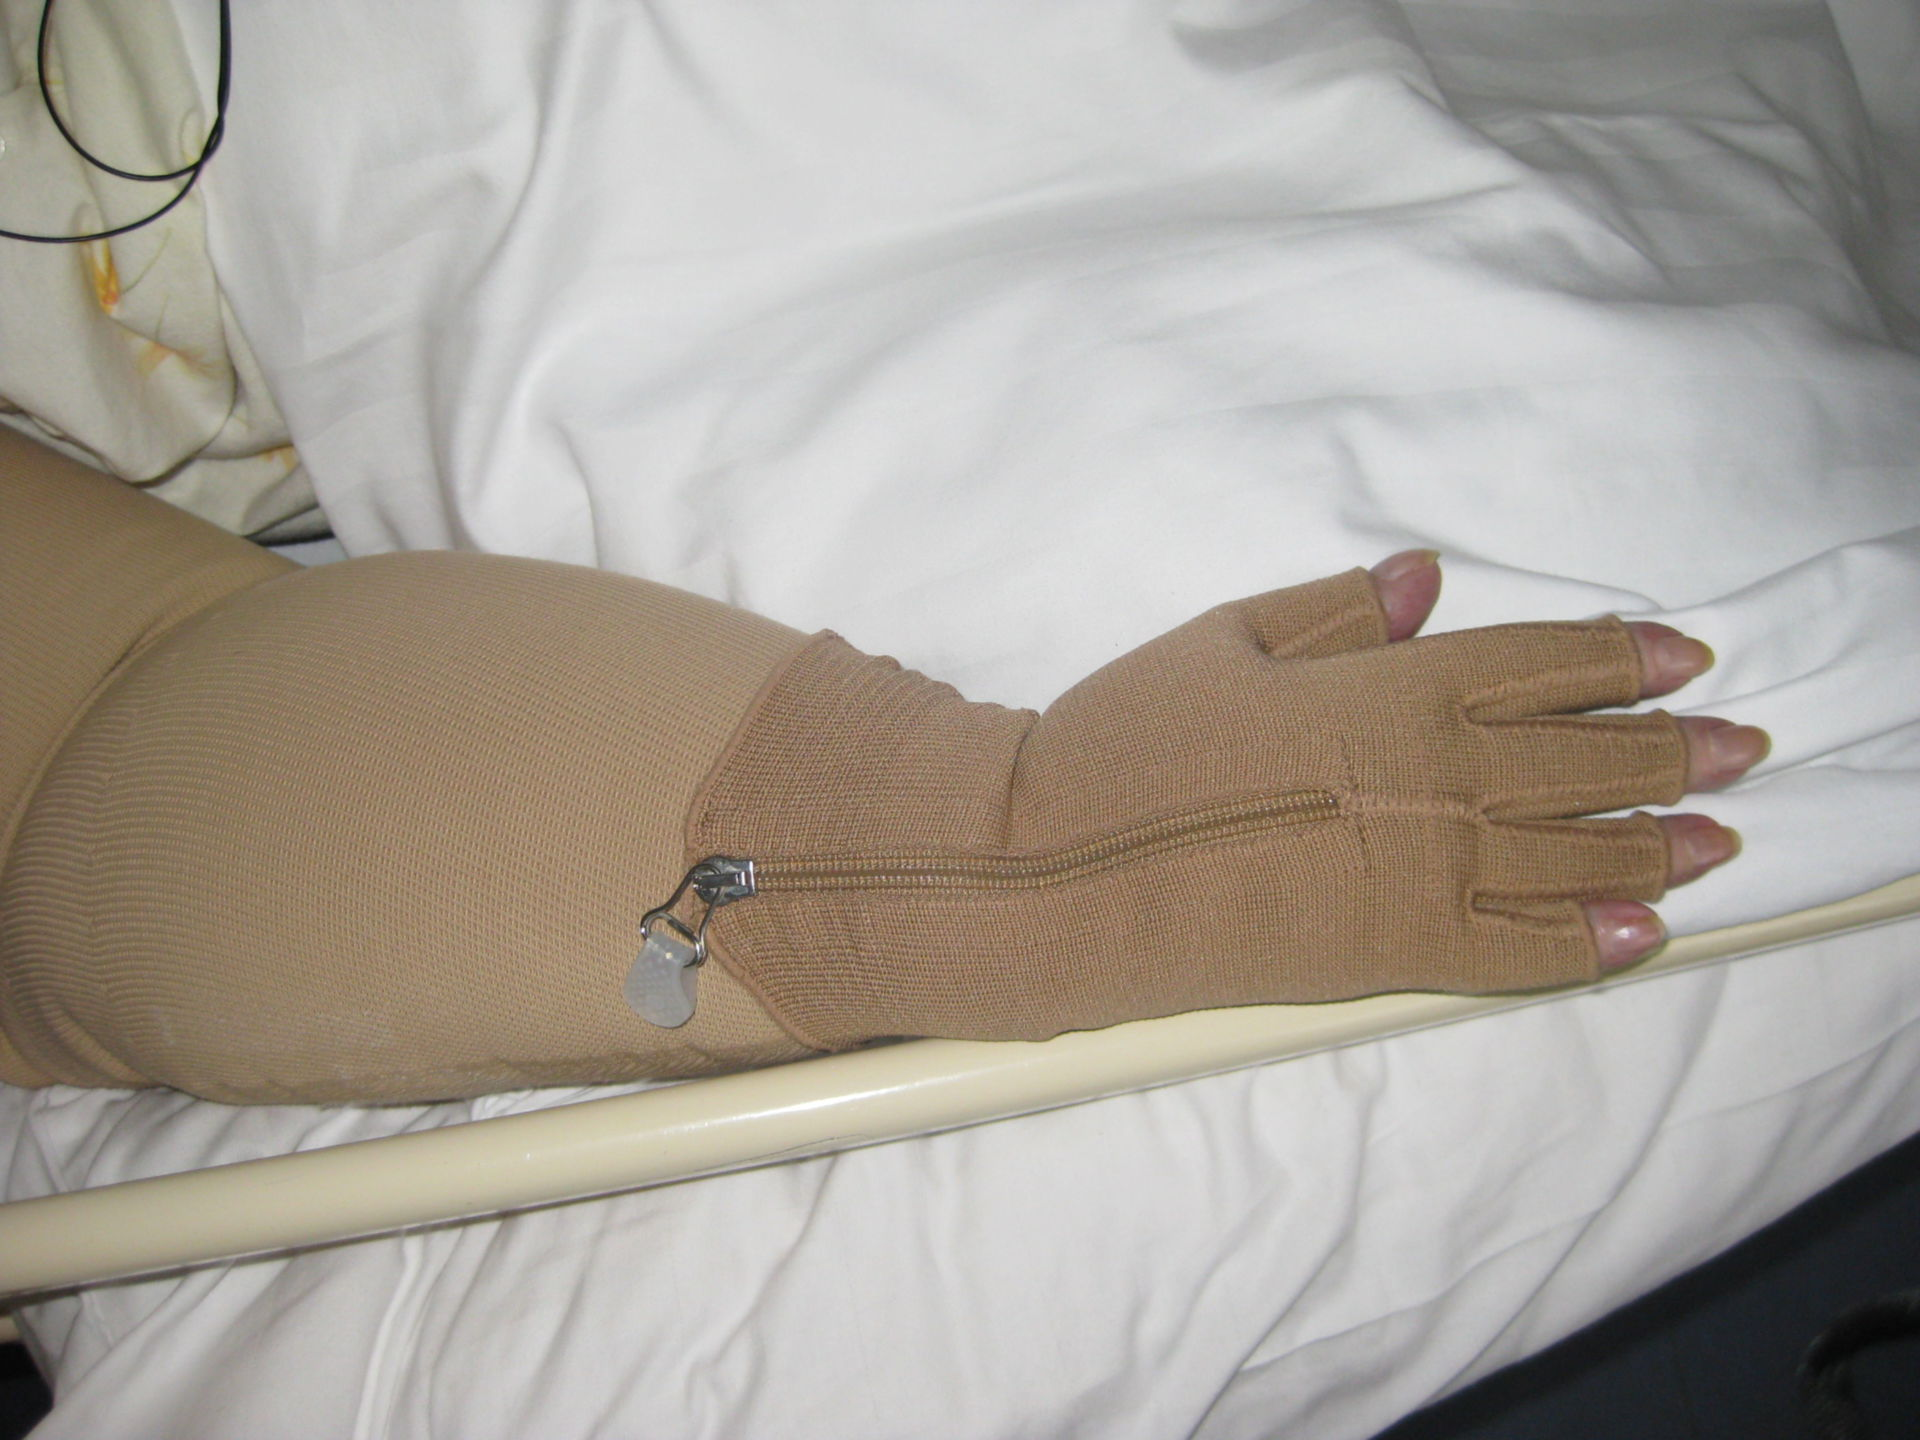 Compression glove for the treatment of lymphedema